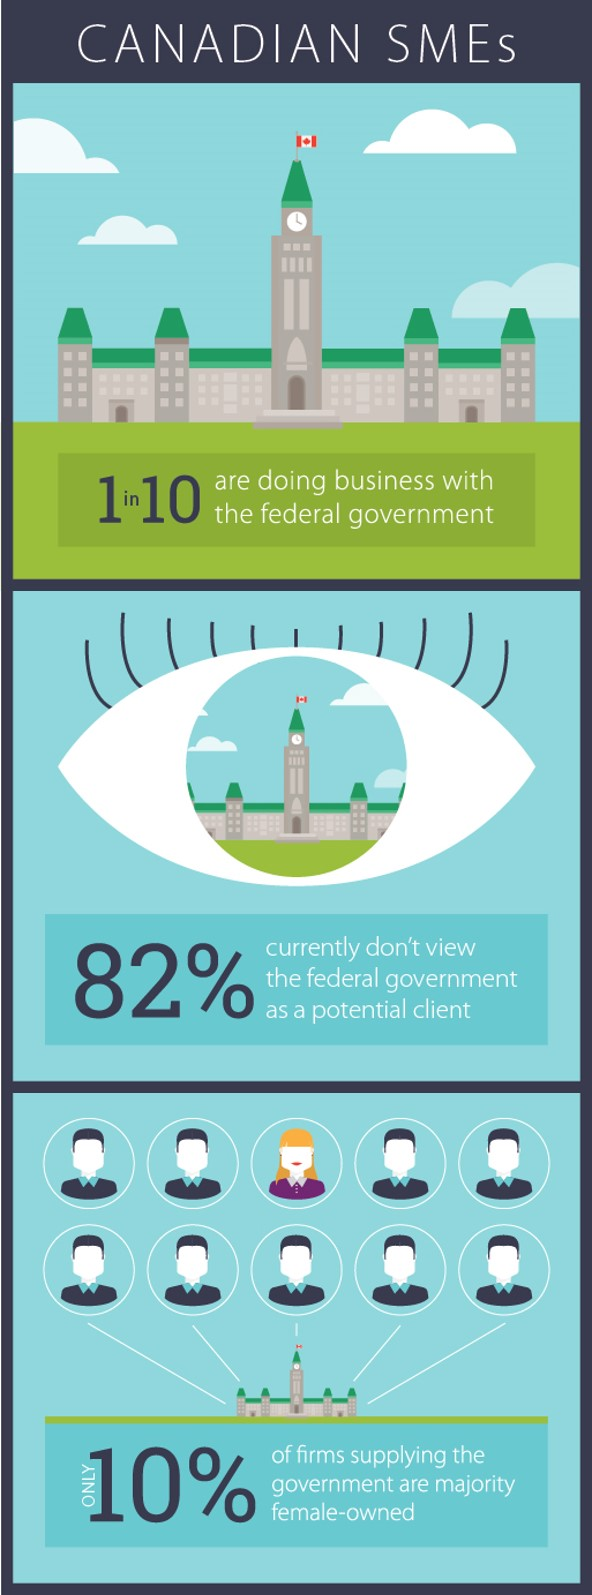 1/10 do business with the federal government, 82% don't see the government as a client, 1/10 firms supplying the government are majority female-owned